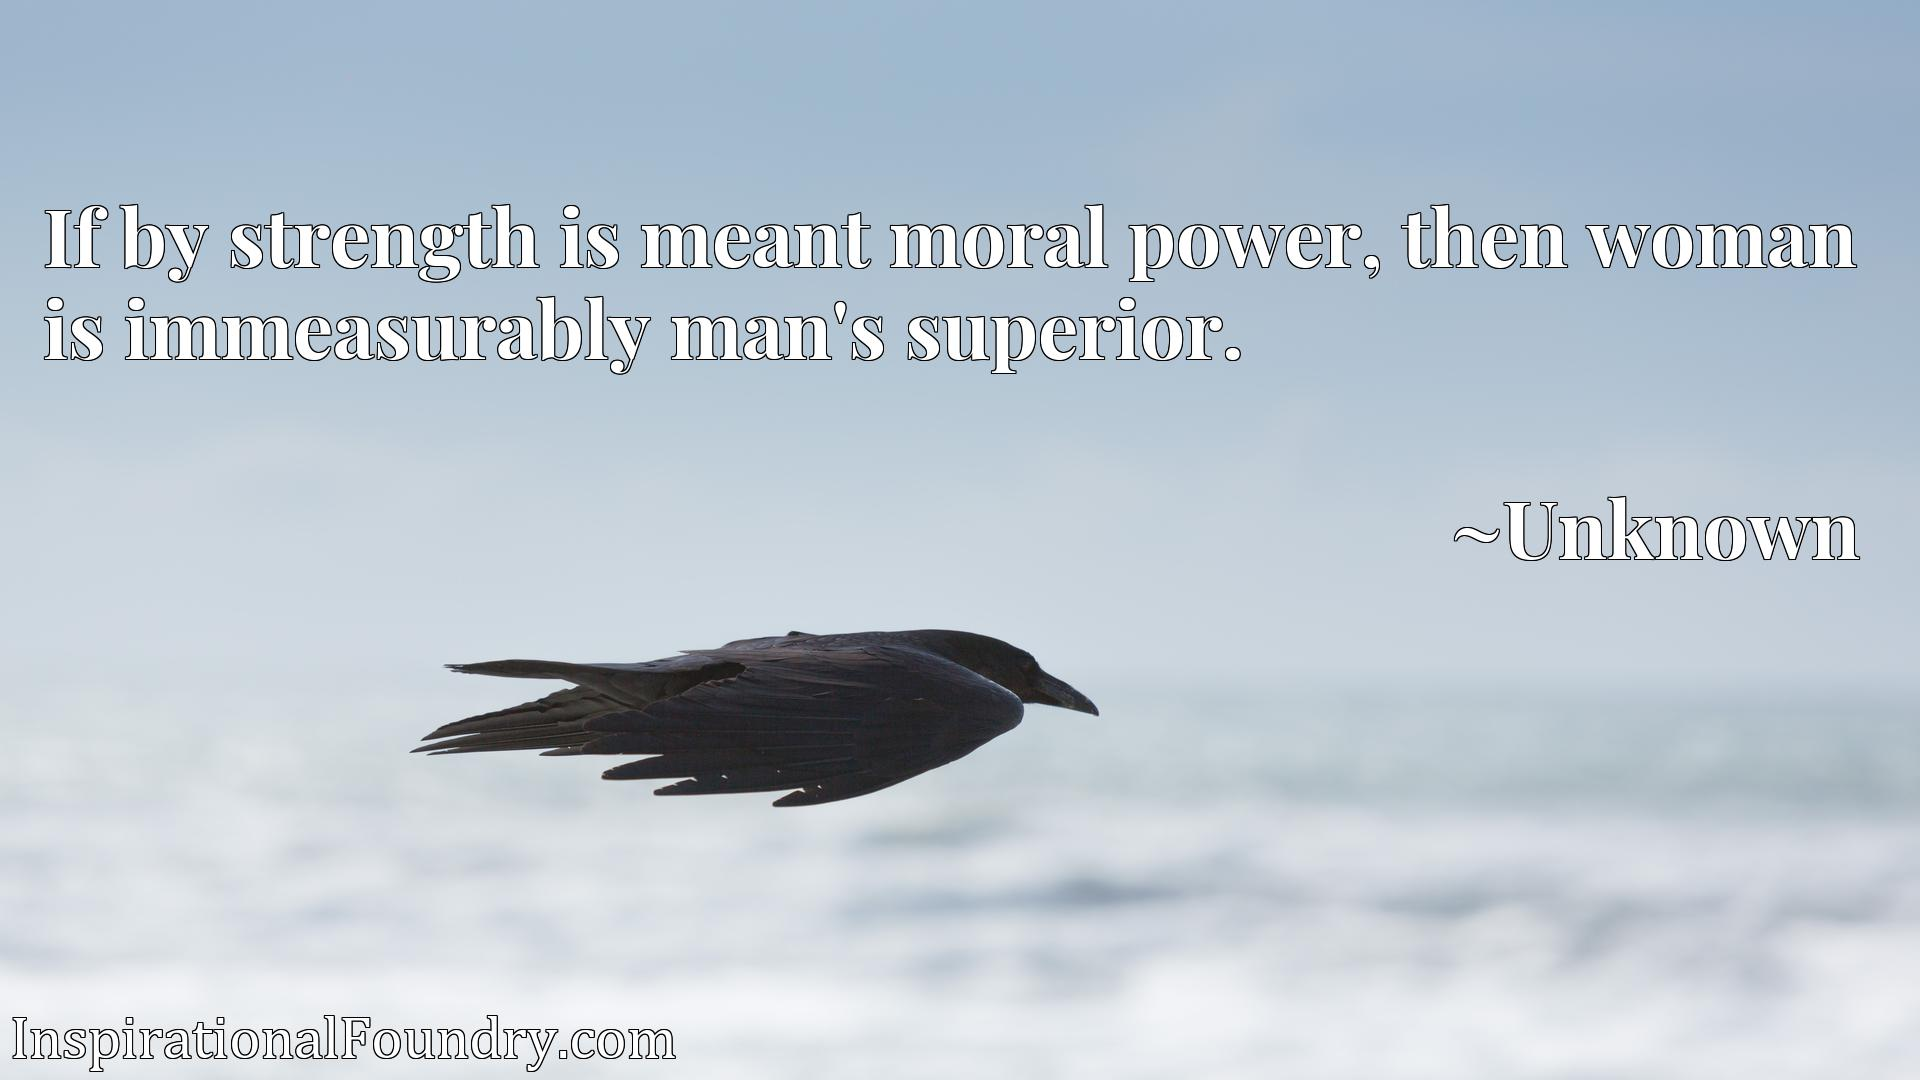 If by strength is meant moral power, then woman is immeasurably man's superior.